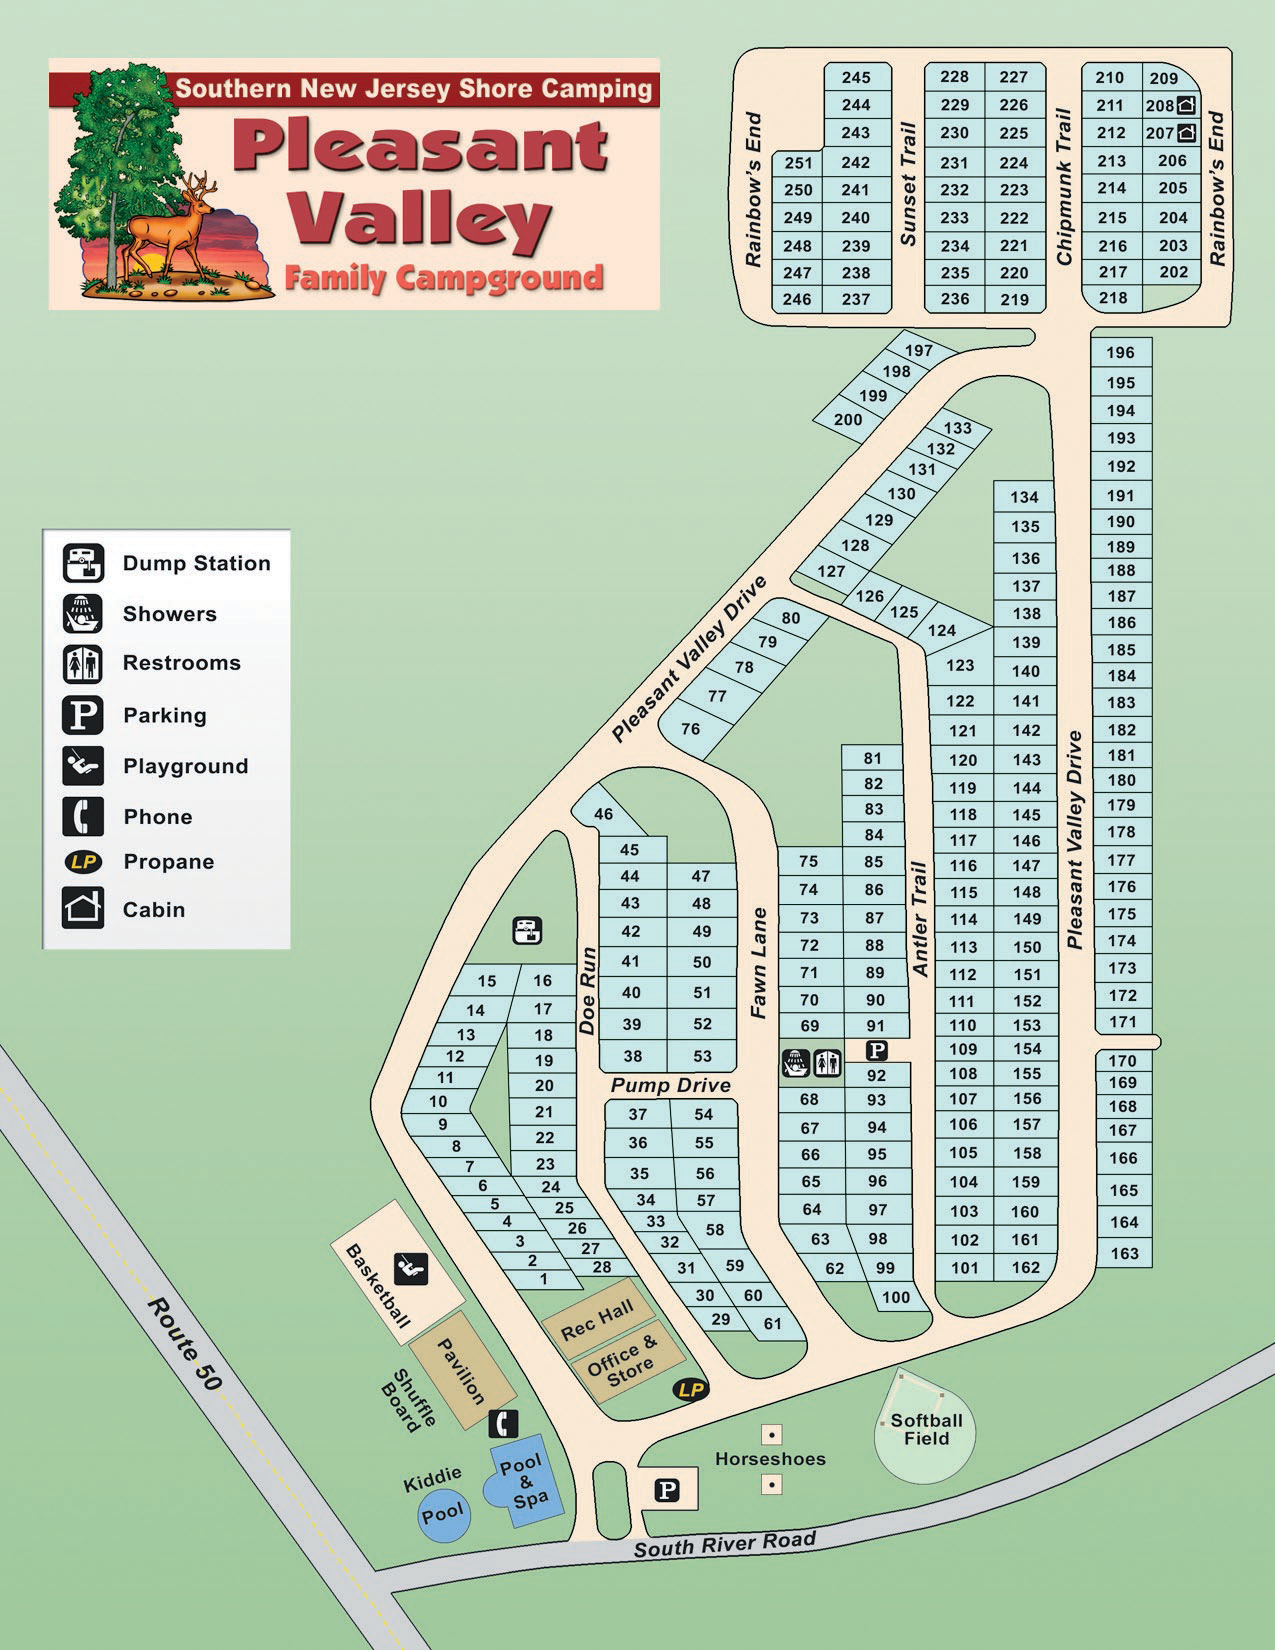 Pleasent Valley Map : pleasent, valley, Pleasant, Valley, Family, Campground, Rules